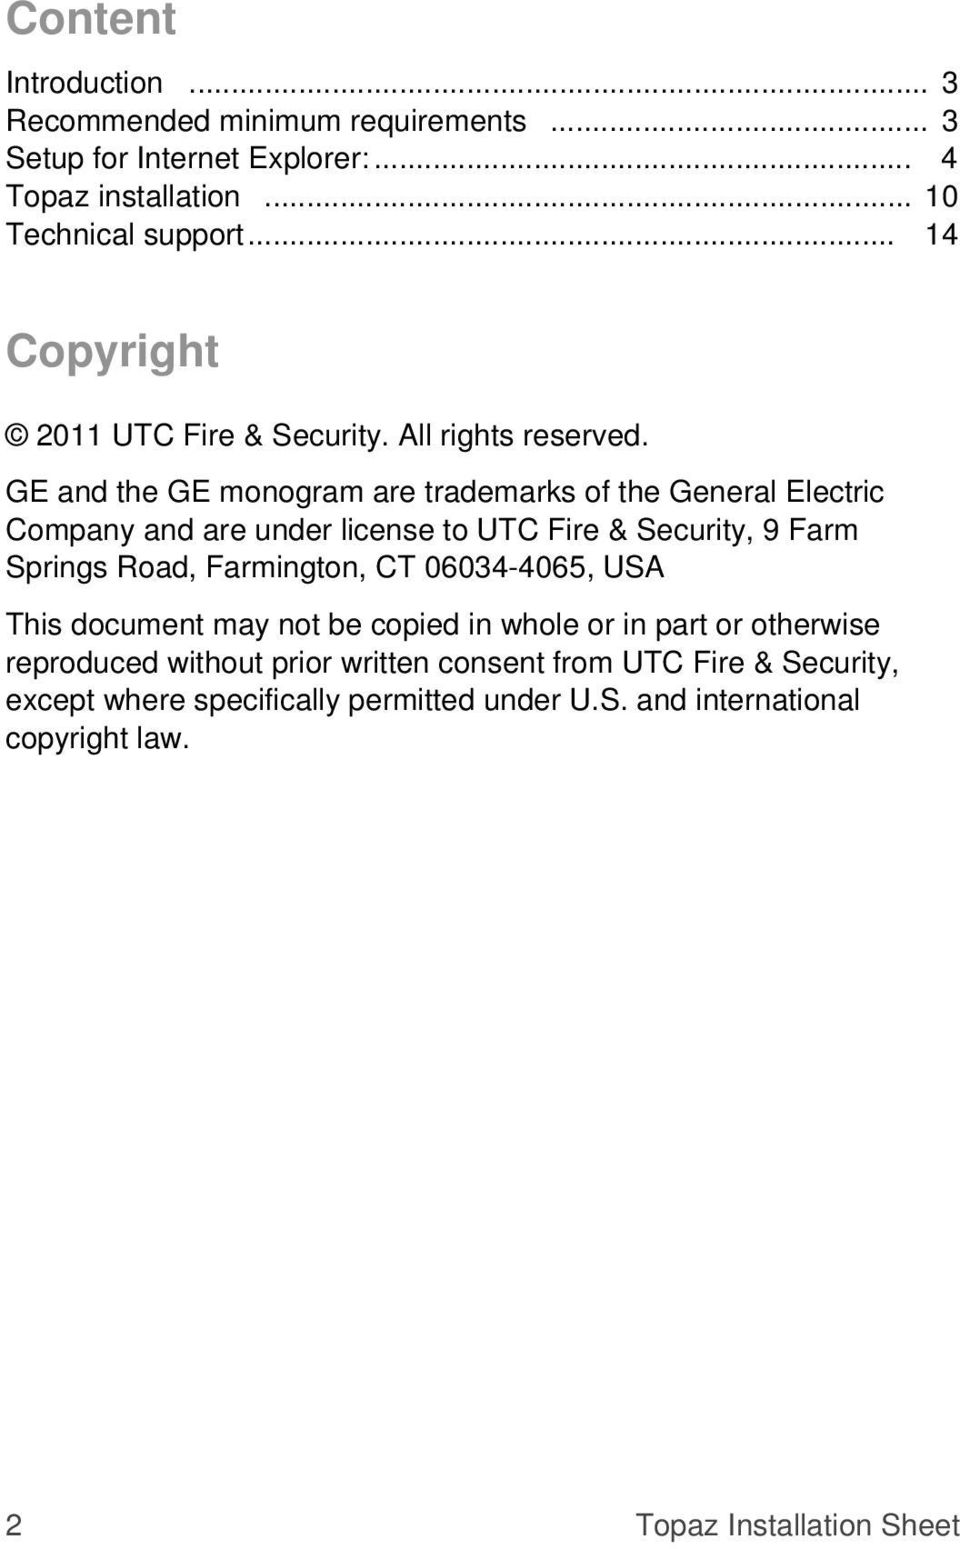 GE and the GE monogram are trademarks of the General Electric Company and are under license to UTC Fire & Security, 9 Farm Springs Road, Farmington, CT